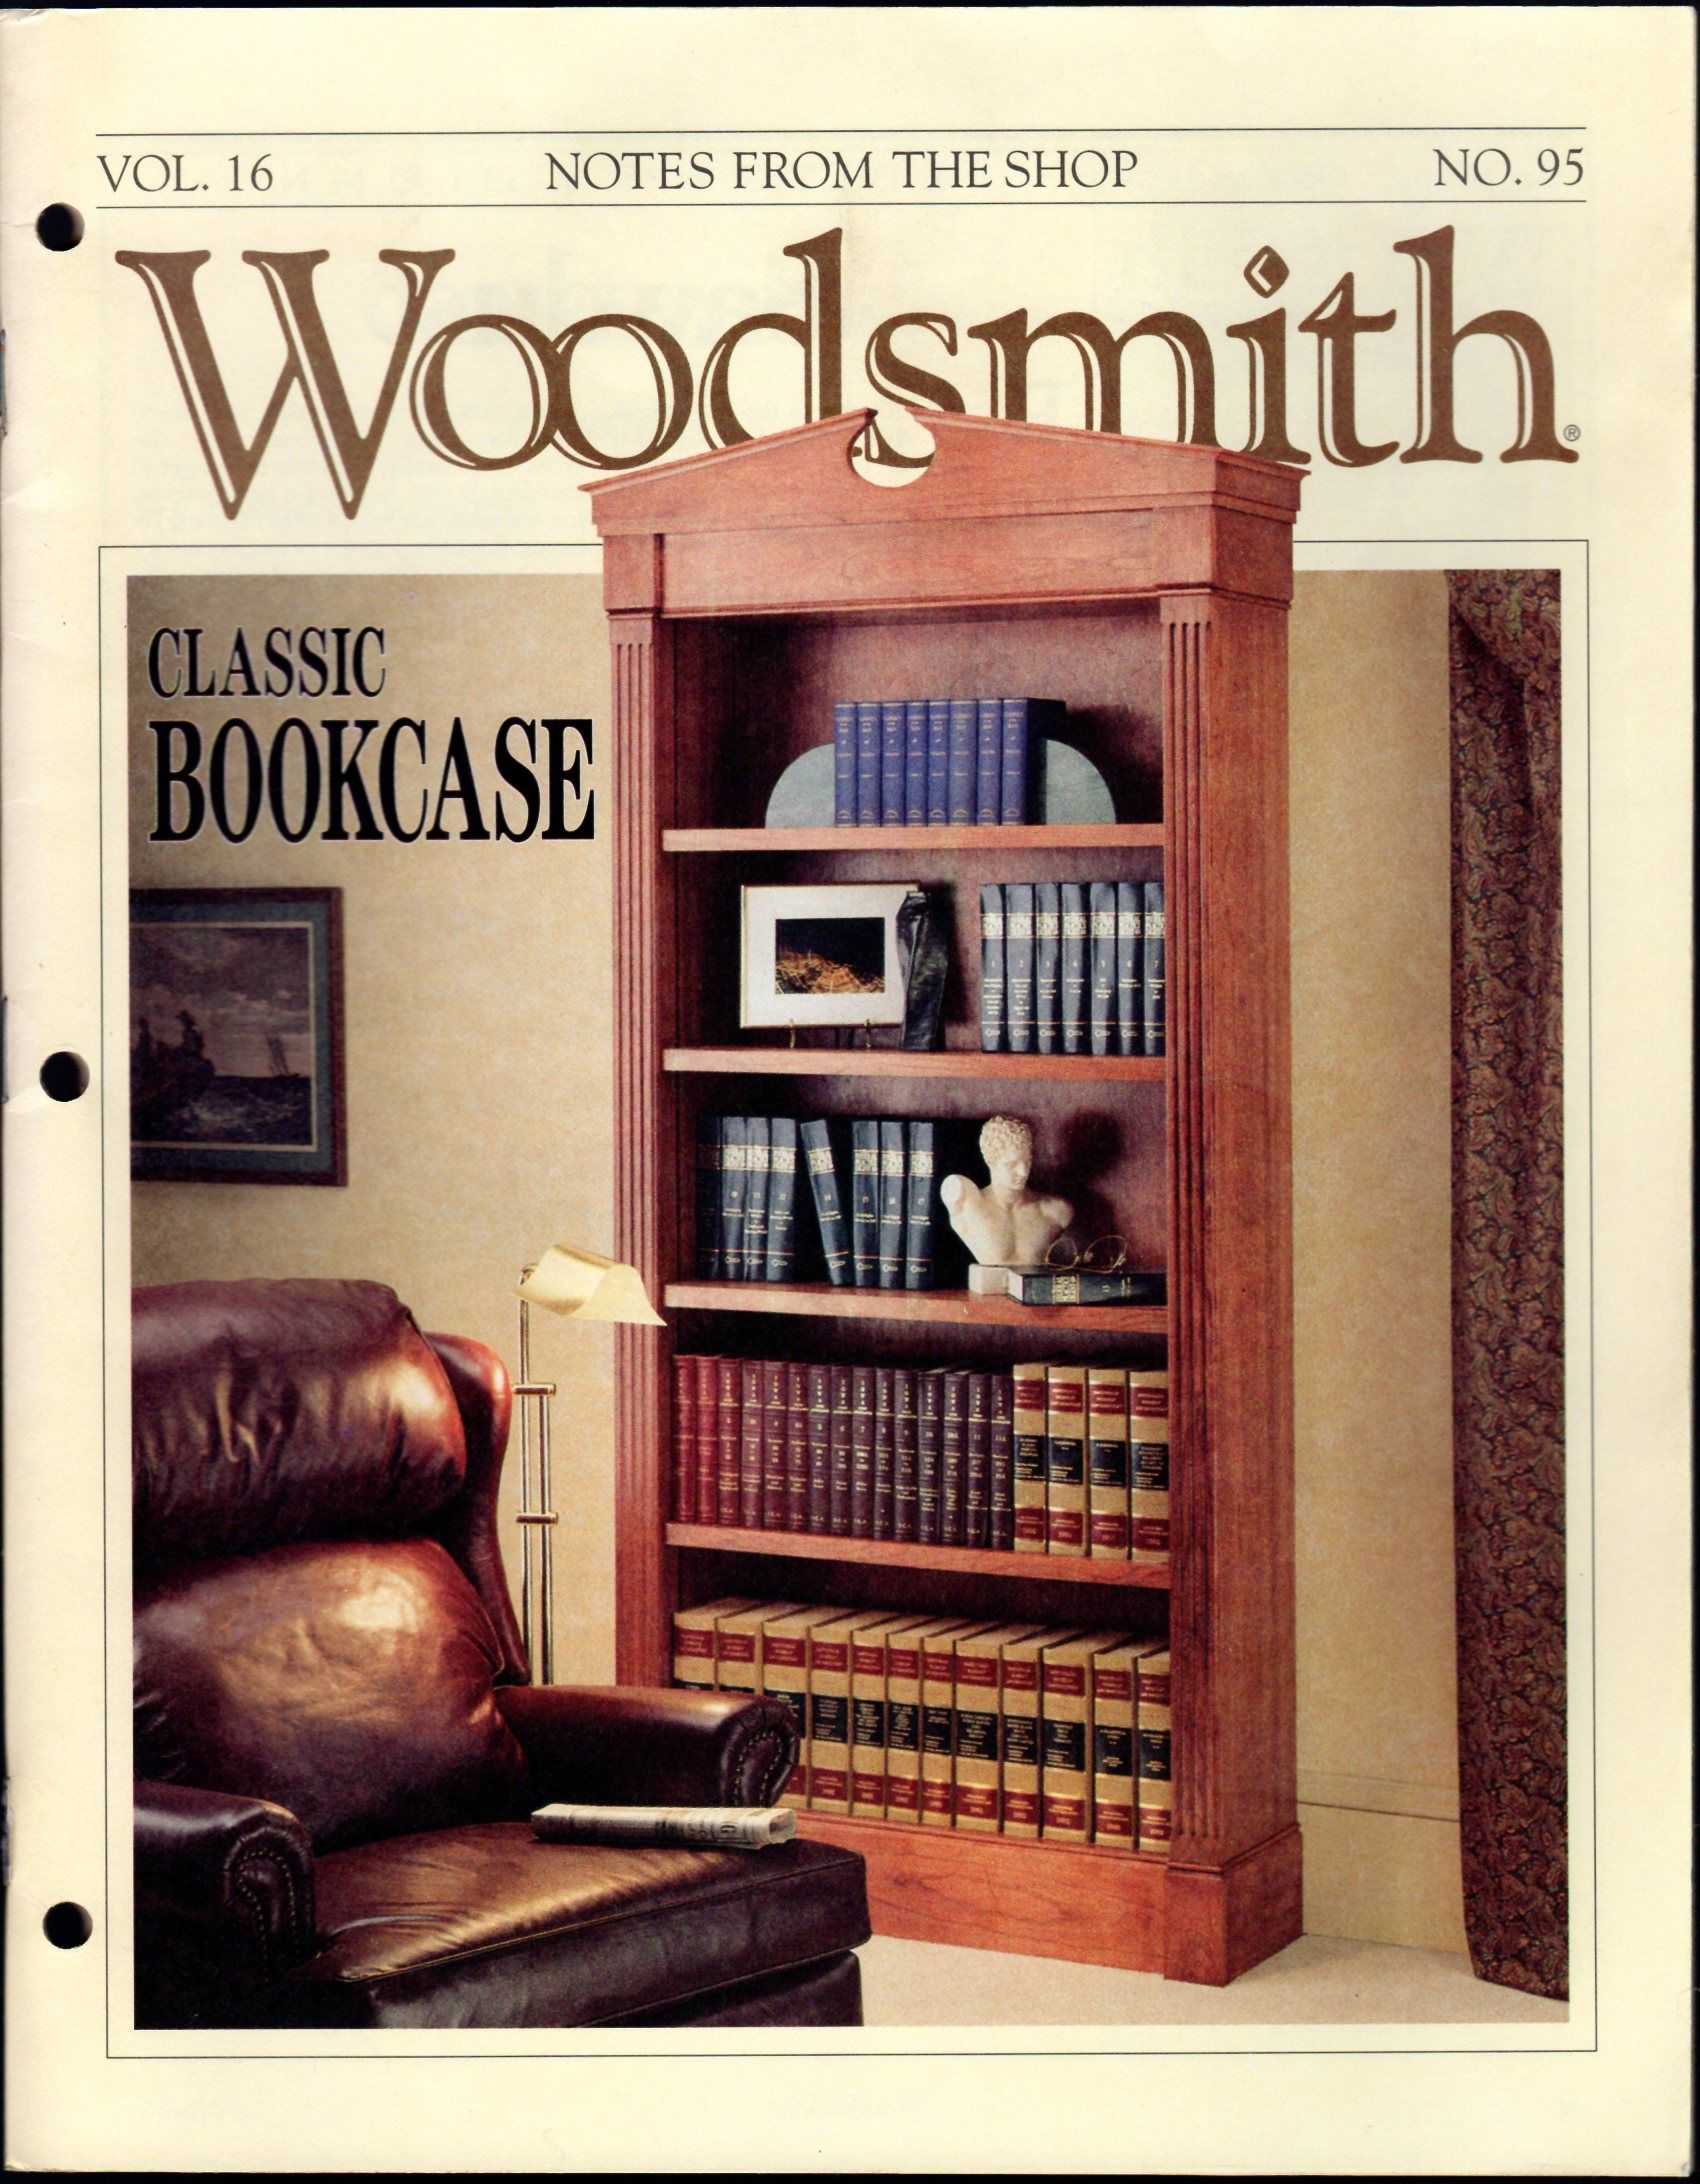 Woodsmith notes from the shop vol 16 95 octoberl for Fine woodworking magazine discount